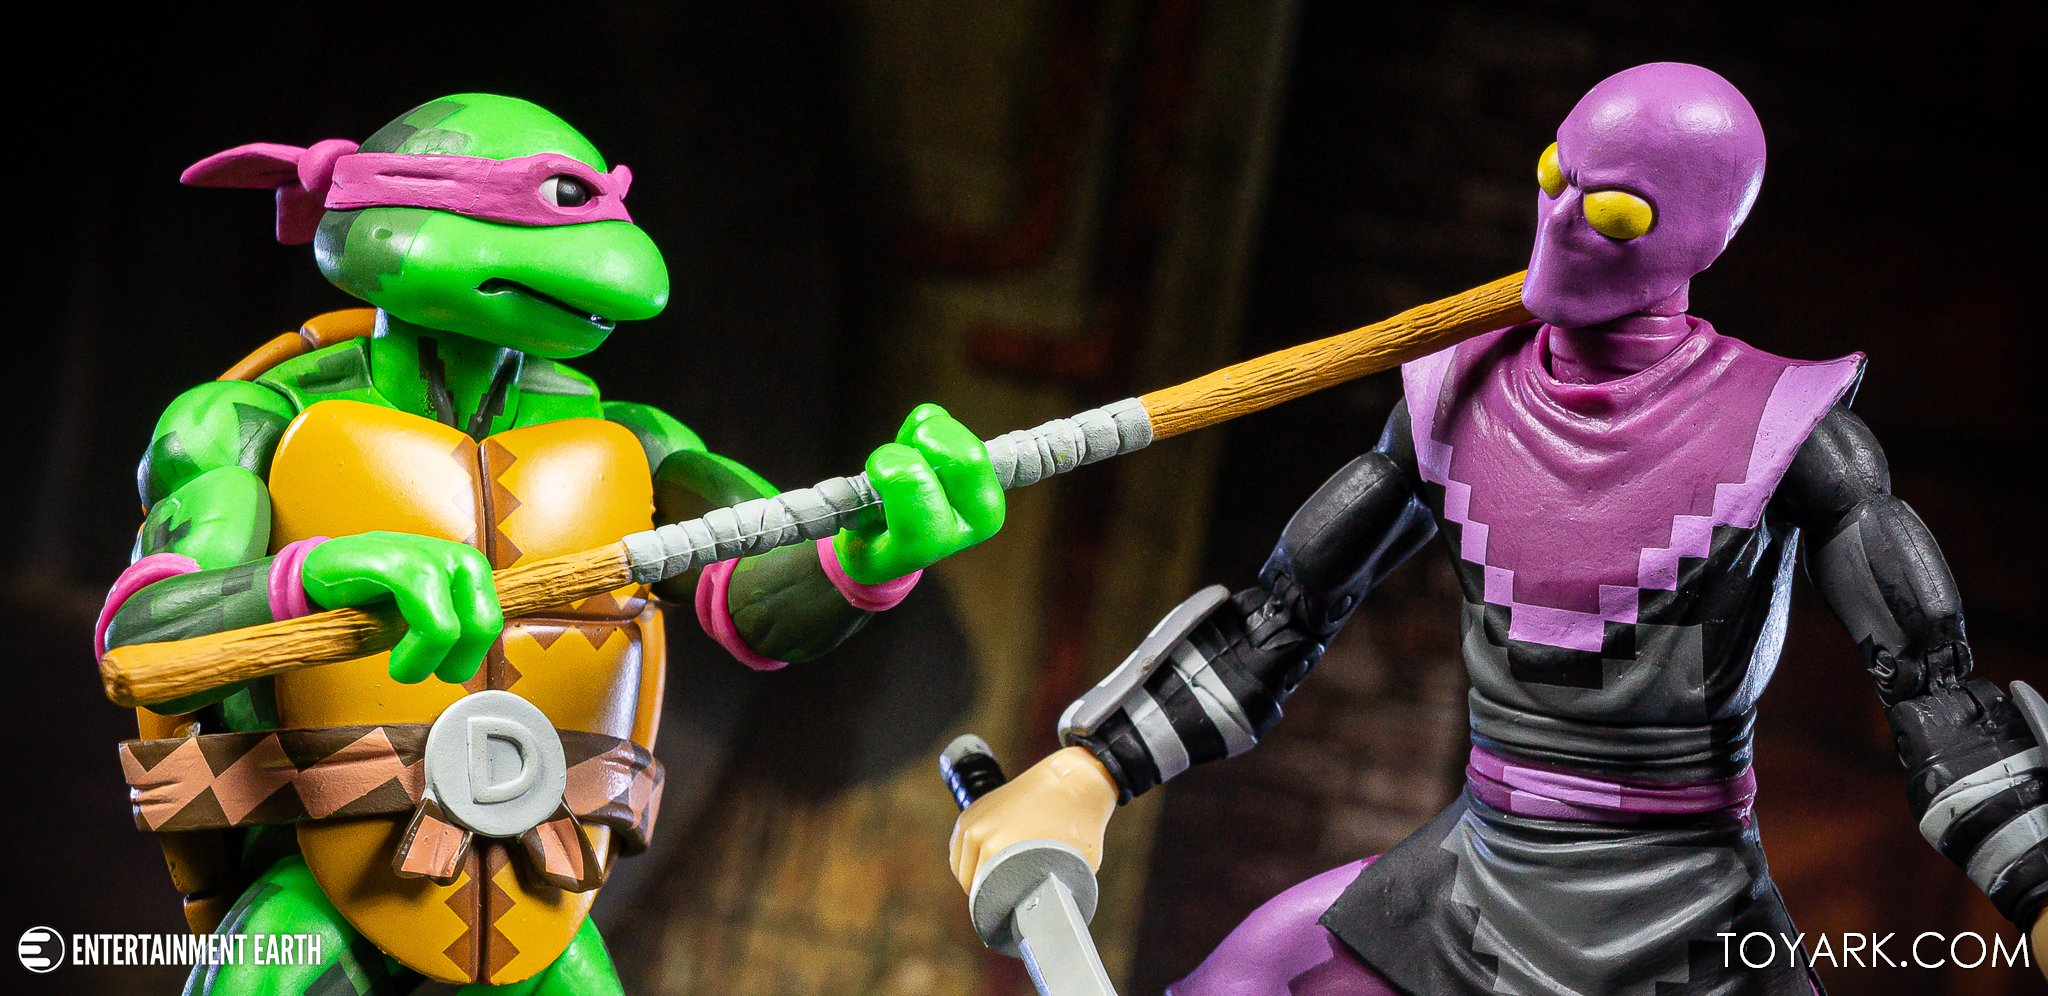 https://news.toyark.com/wp-content/uploads/sites/4/2020/06/NECA-TMNT-Turtles-In-Time-S1-082.jpg